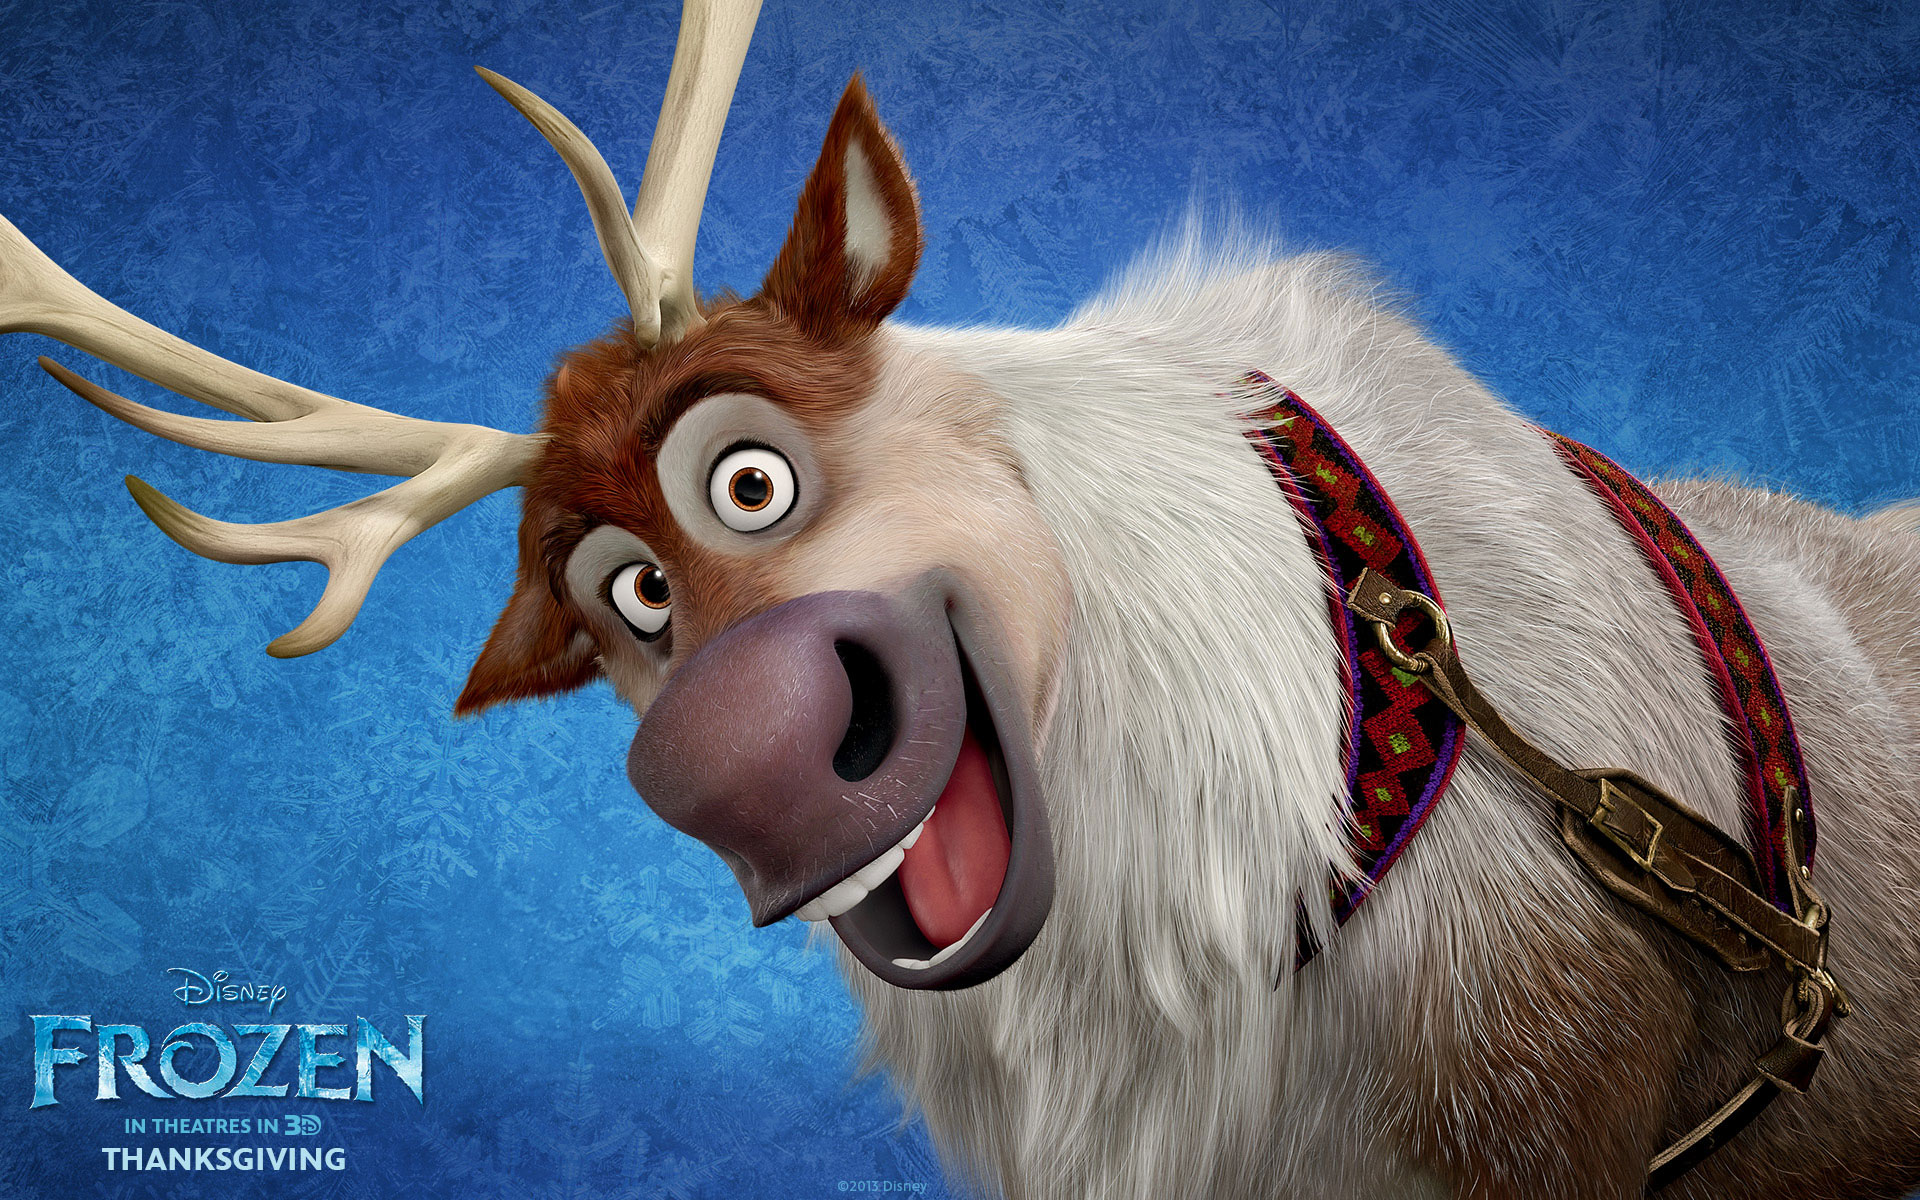 Olaf Frozen Wallpaper Quotes Frozen 2013 Movie Wallpapers Hd Amp Facebook Timeline Covers